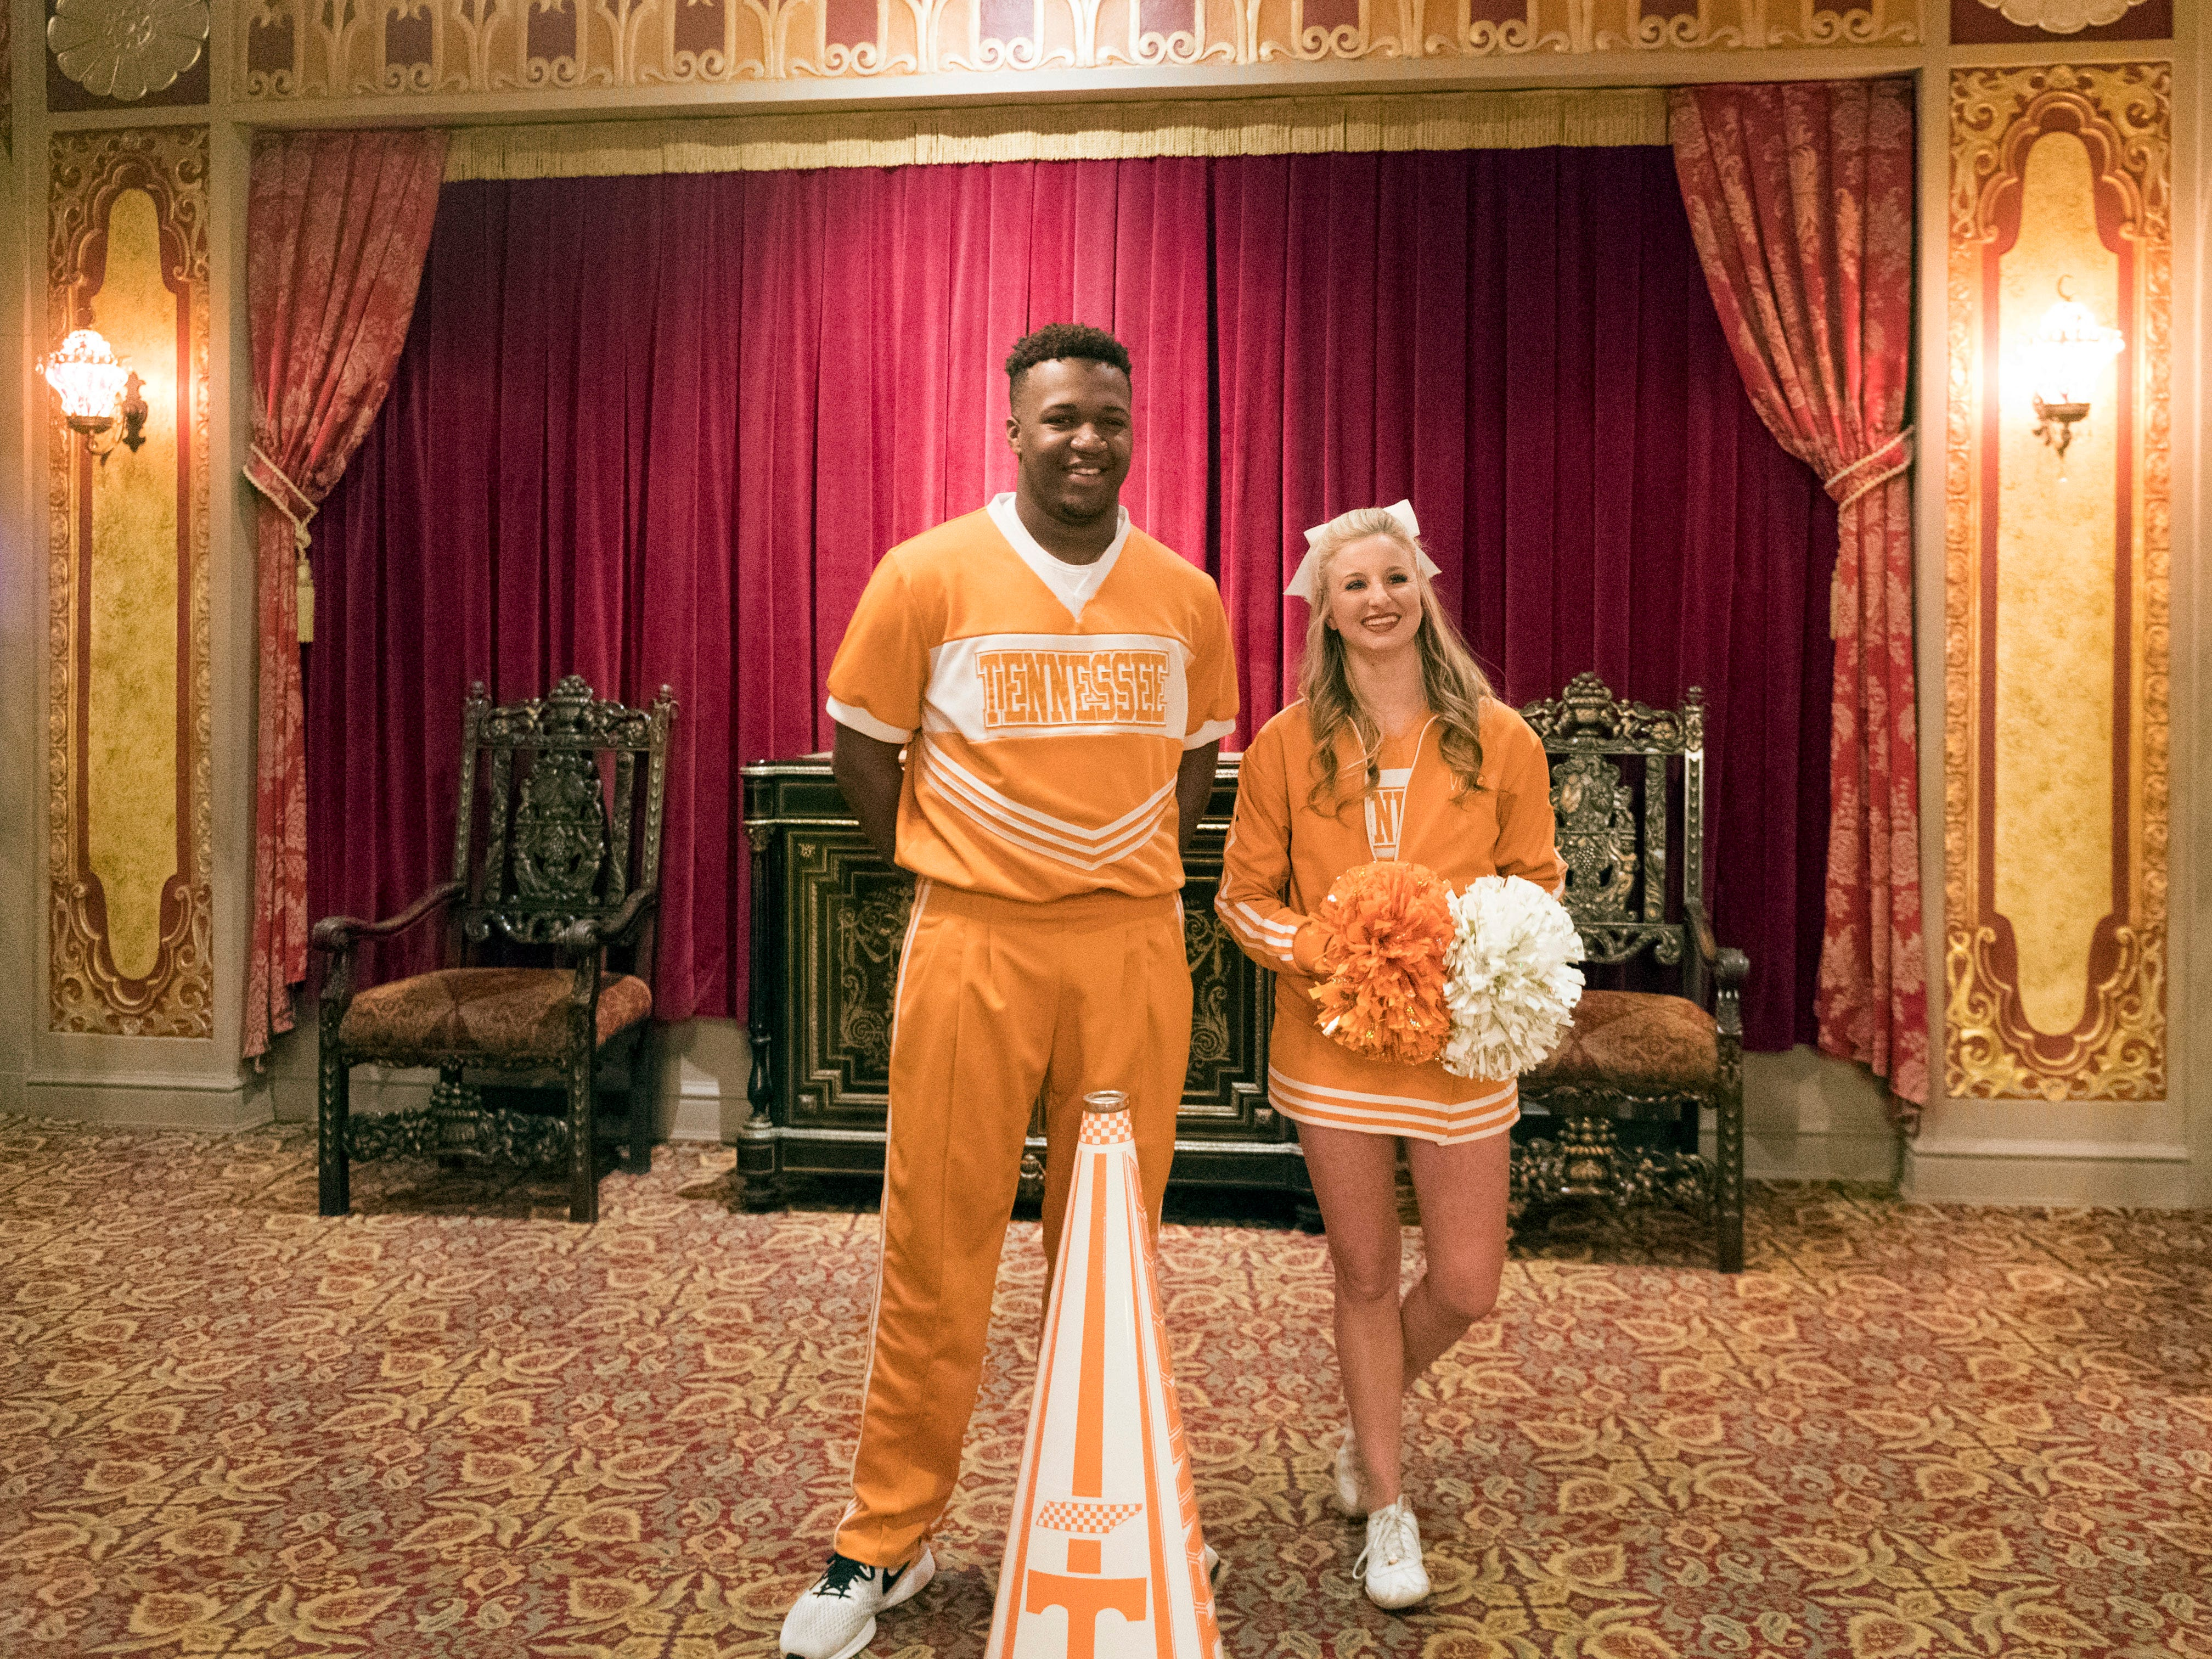 University of Tennessee cheerleaders Kahlil Bostick and Megan Stallings greet Tennessee fans as they arrive for the Signing Day celebration at the Tennessee Theatre on Wednesday, February 7, 2018.